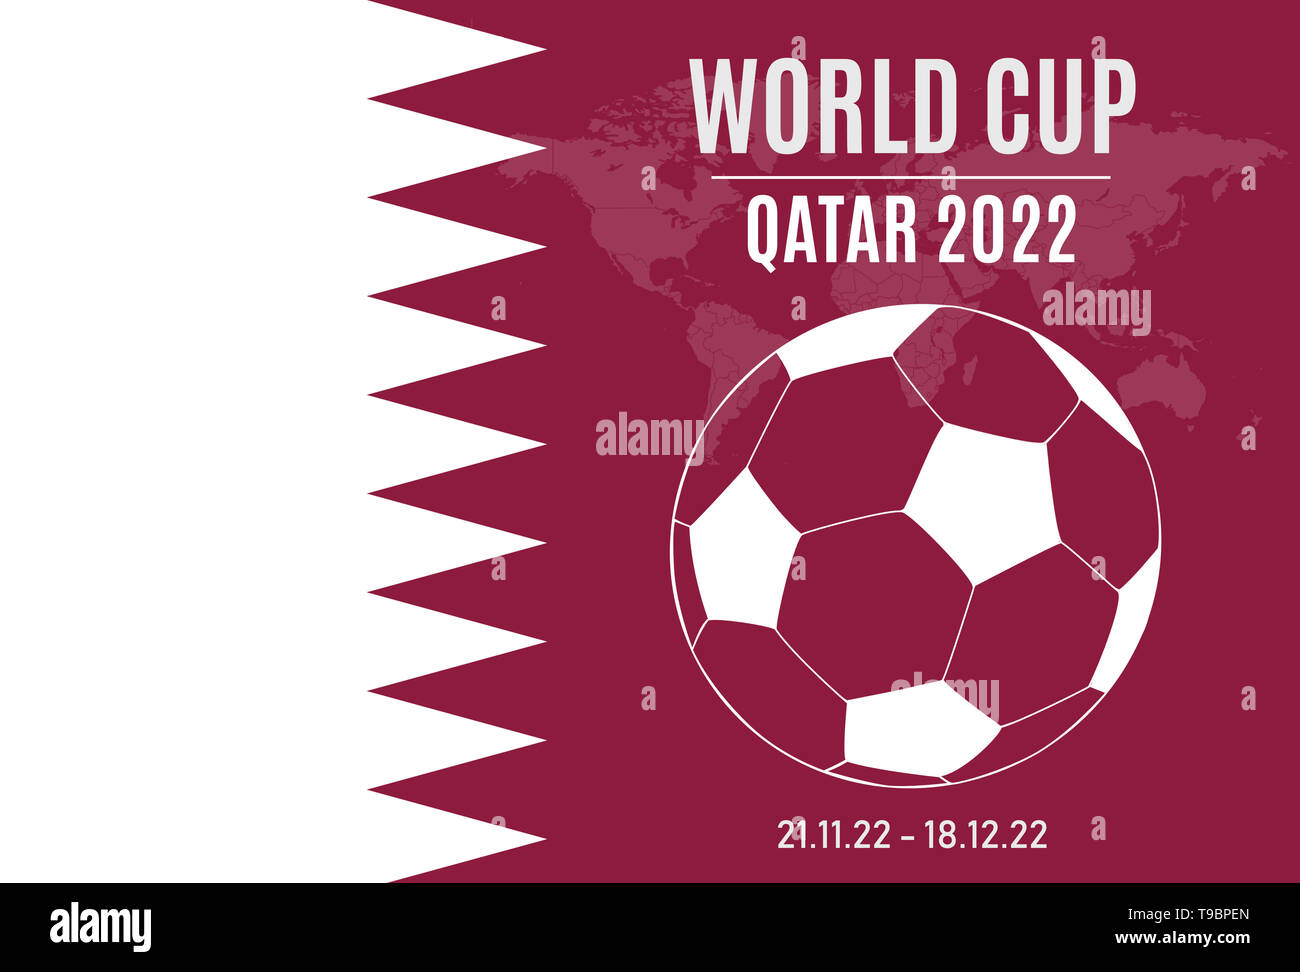 illustration of the 2022 soccer world cup in qatar. Flag with soccer ball and world in the background - Stock Image